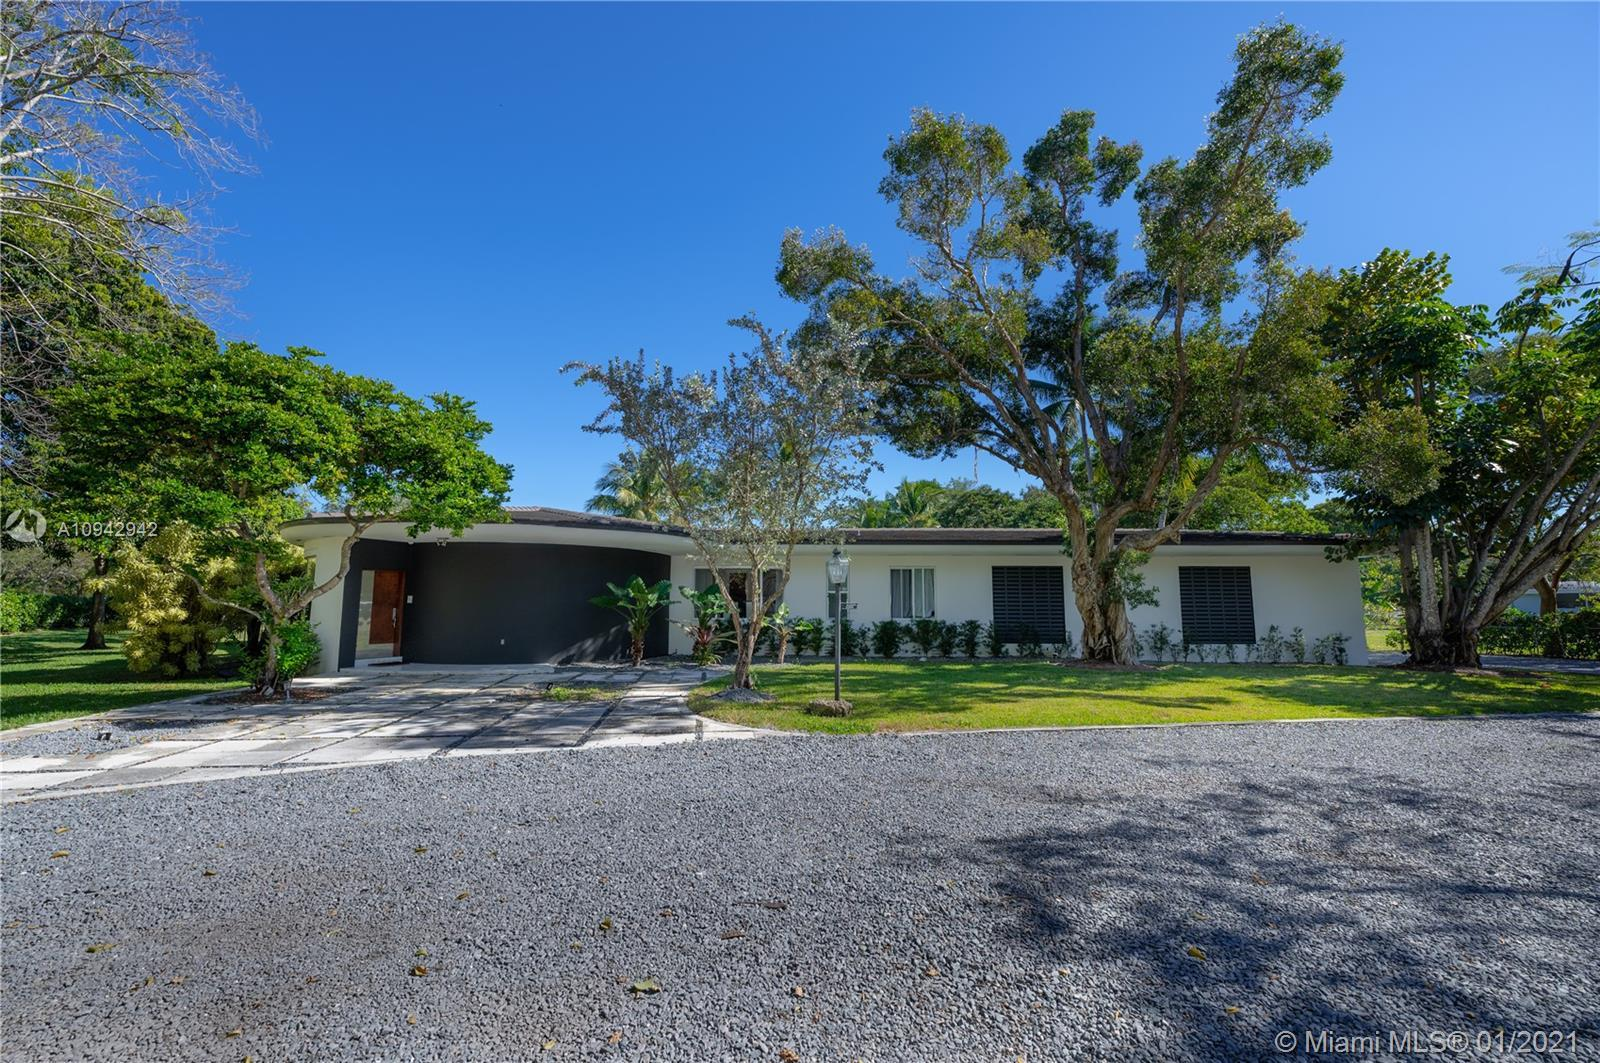 Fabulous one-story corner home sitting on a 1+ acre lot in the heart of Pinecrest. This contemporary